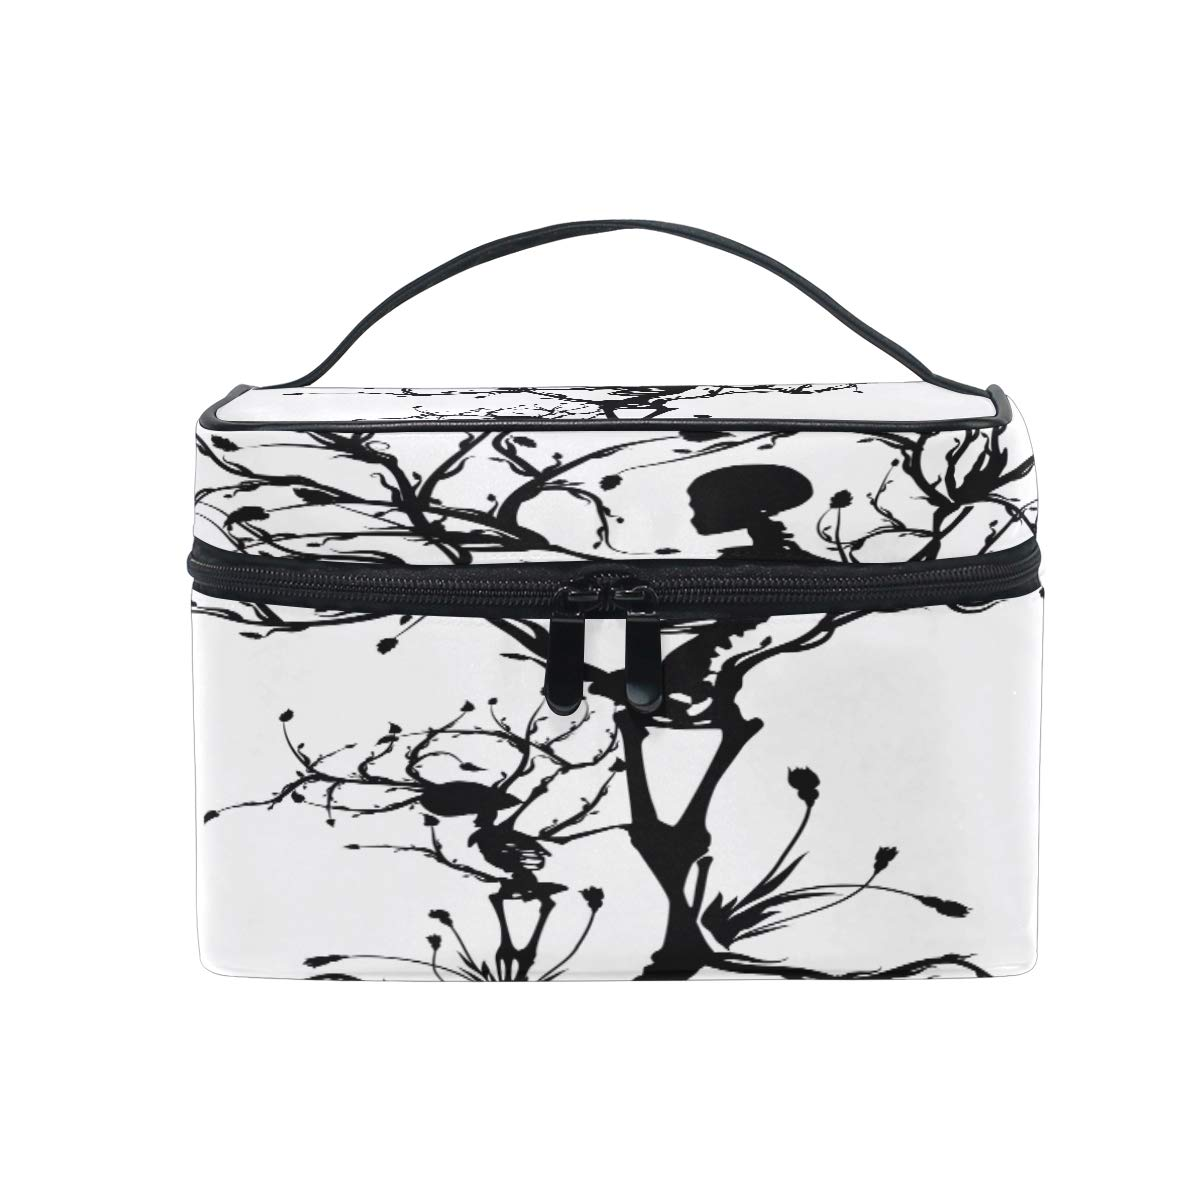 1200x1200 Xling Makeup Bag Halloween Mexican Abstract Skull